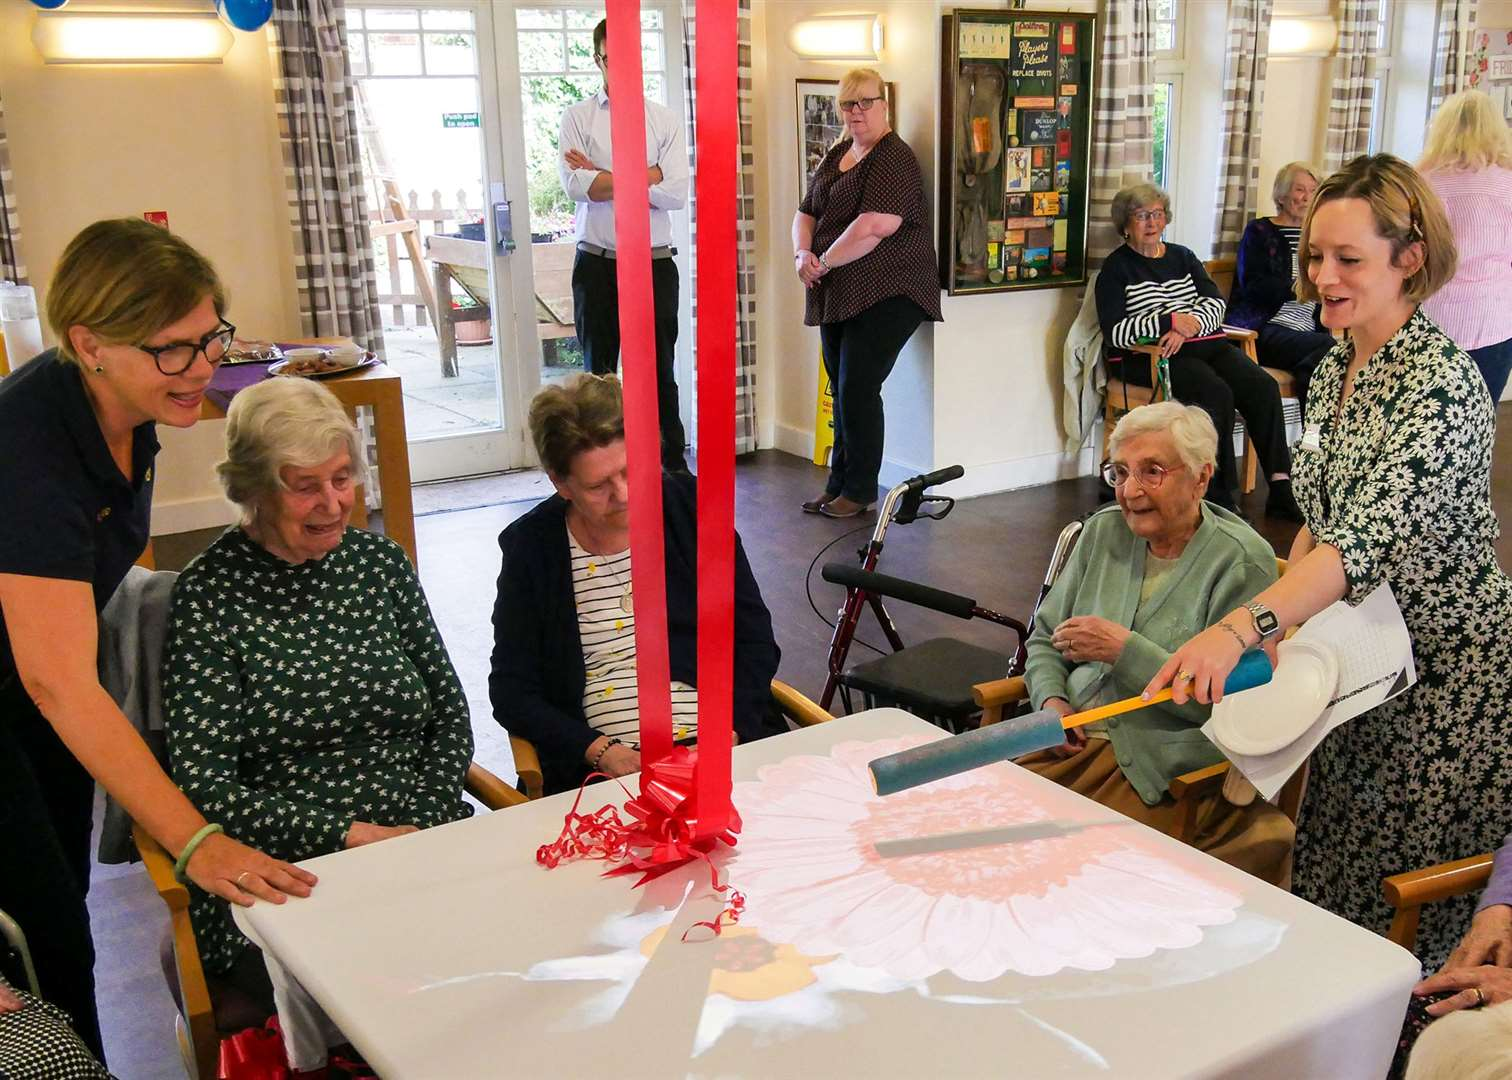 Caroline Scott, far right, teaches residents how the magic table works